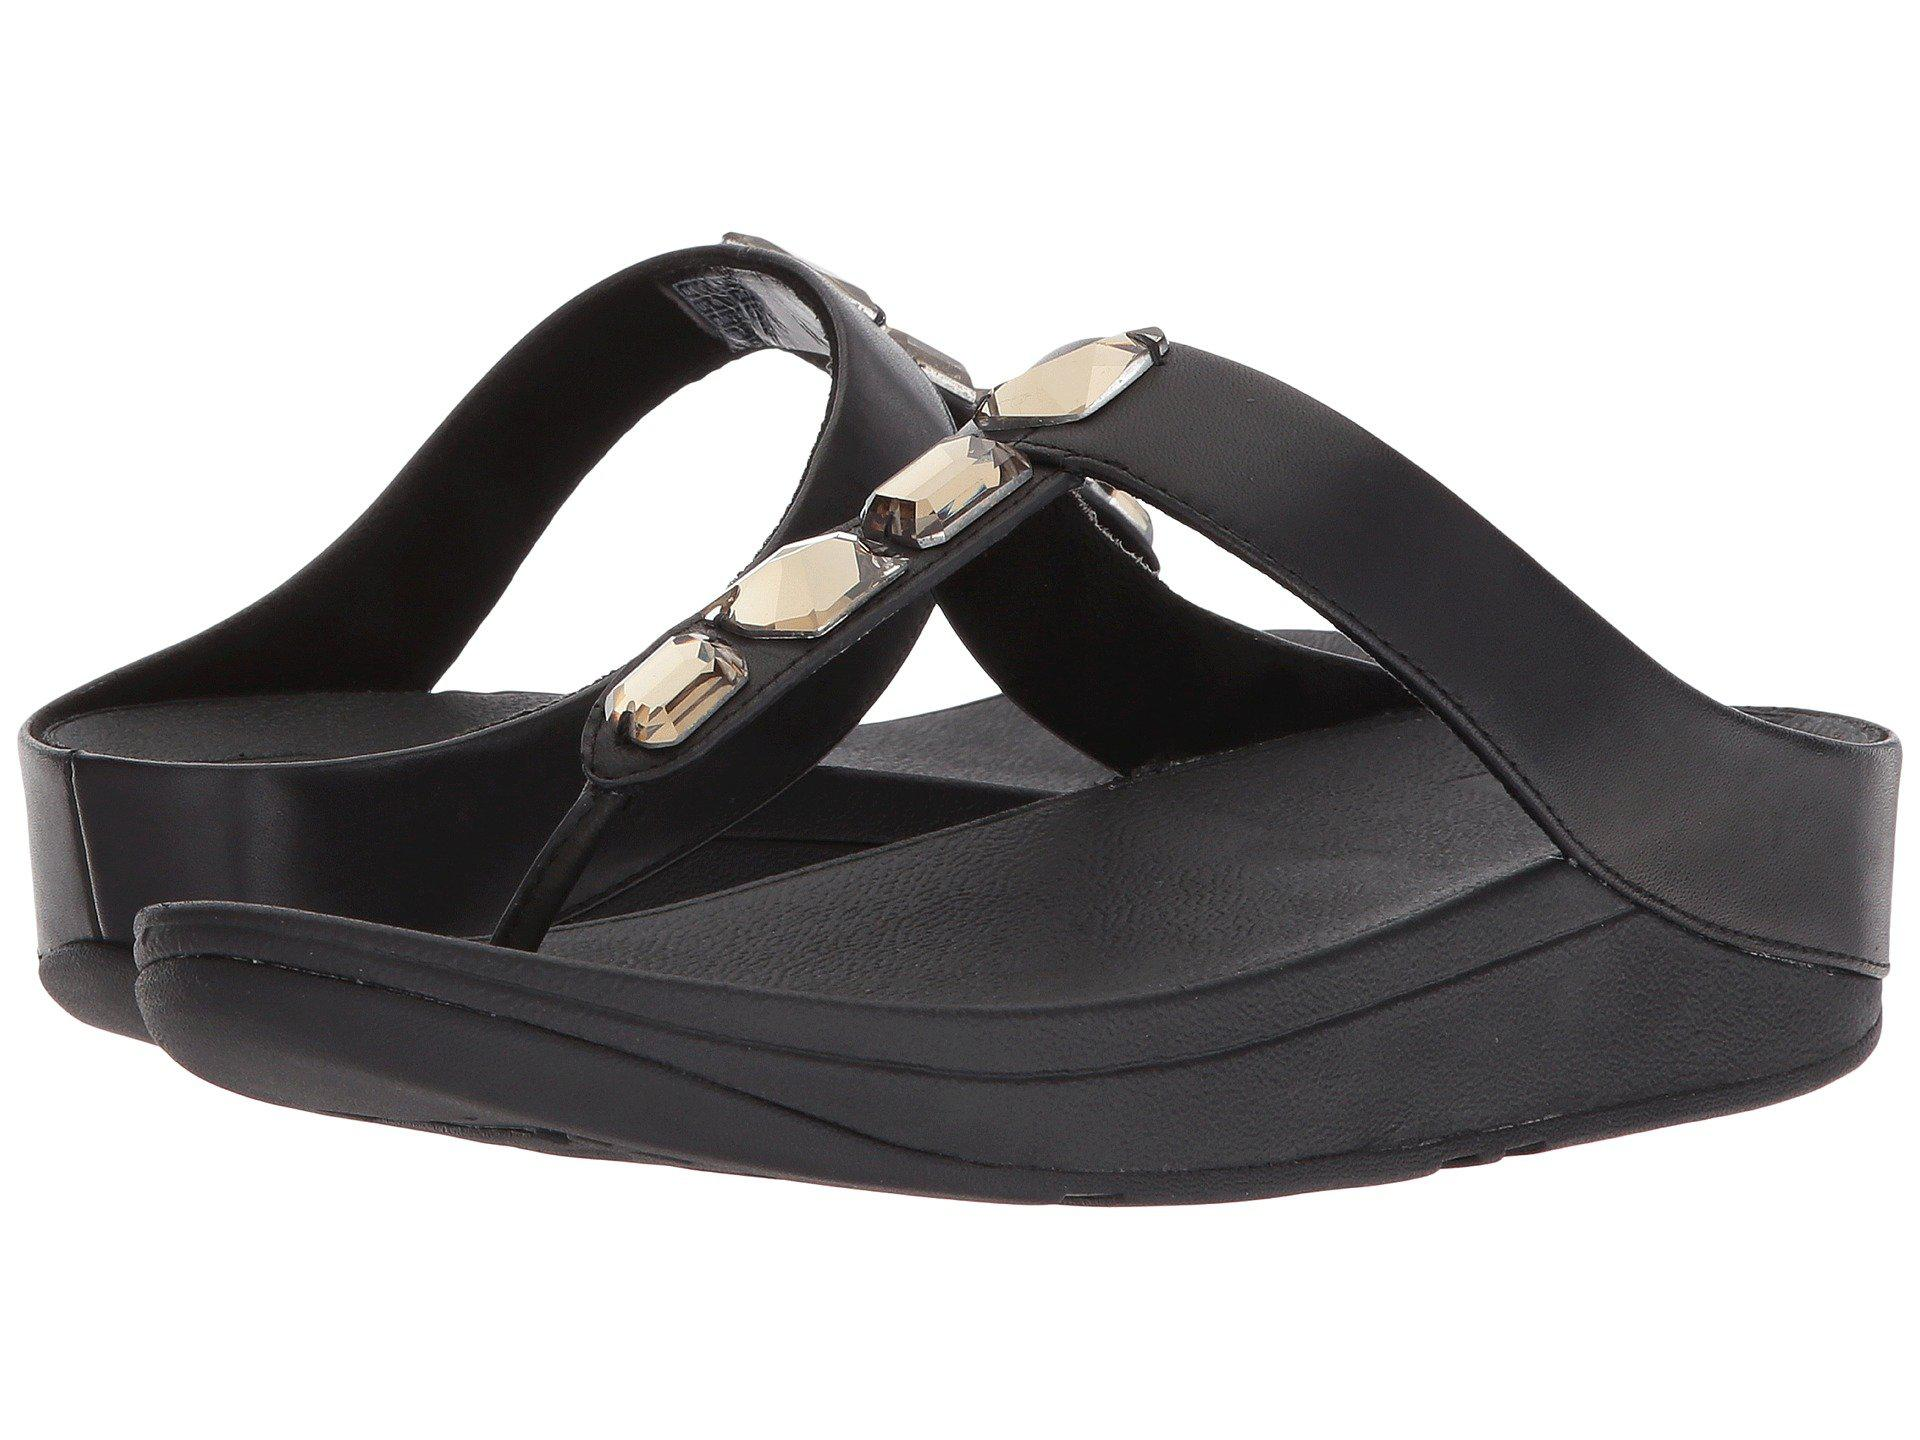 0457590121b7 Lyst - Fitflop Roka Toe Thong Sandals in Black